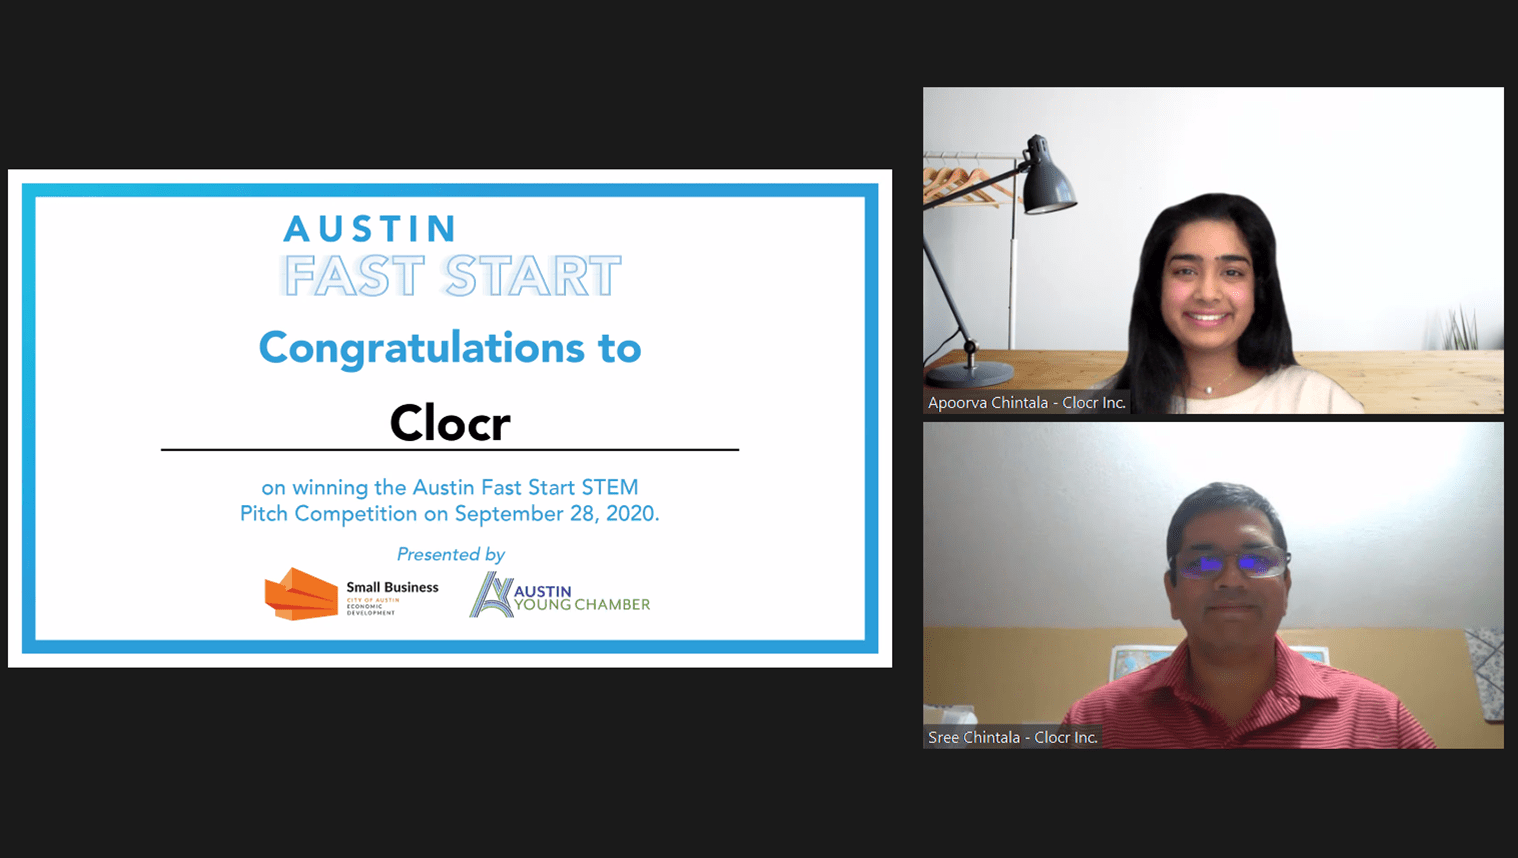 Clocr wins 'Austin Fast Start' pitching competition